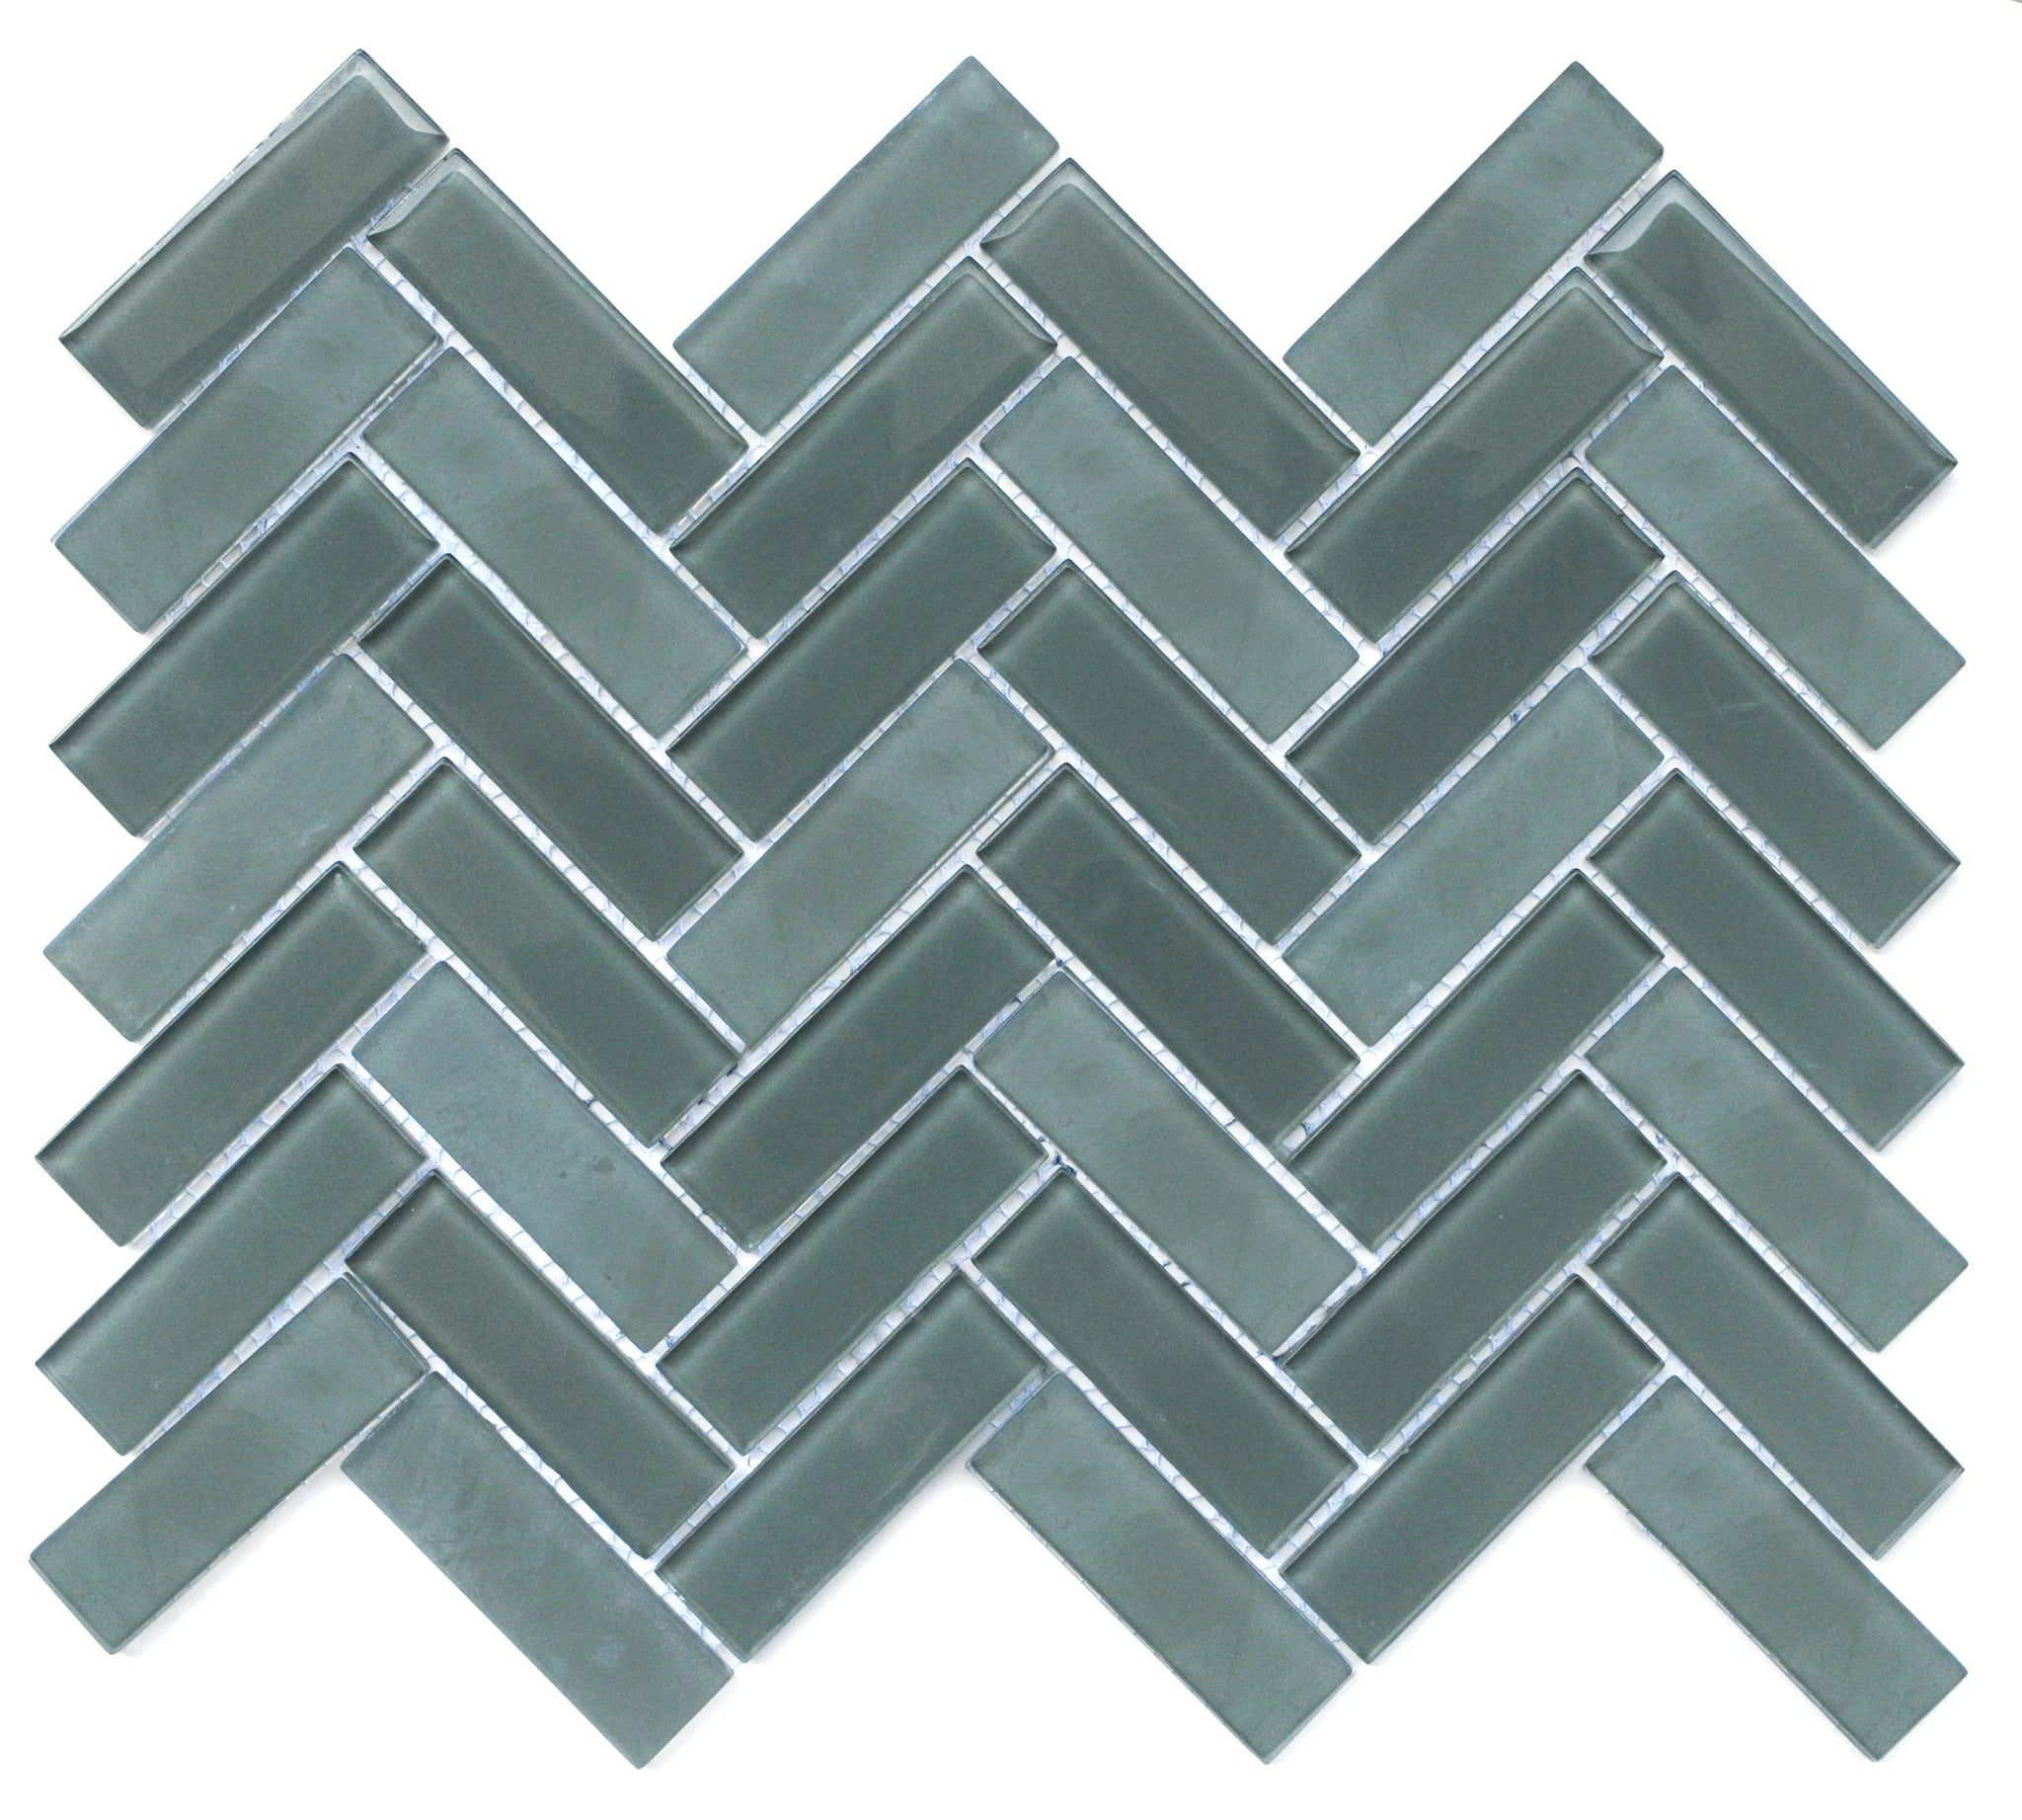 Charisma Glass Herringbone Mosaic Tile Wise